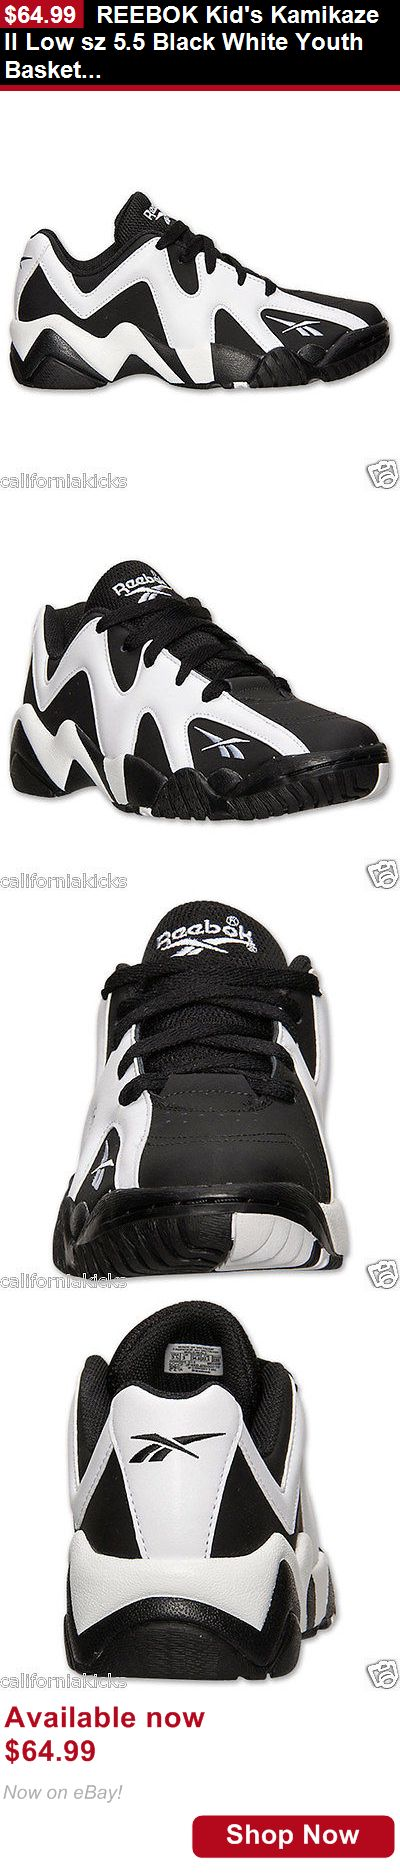 Children boys clothing shoes and accessories: Reebok Kids Kamikaze Ii Low Sz 5.5 Black White Youth Basketball Shoes 5.5Y New BUY IT NOW ONLY: $64.99